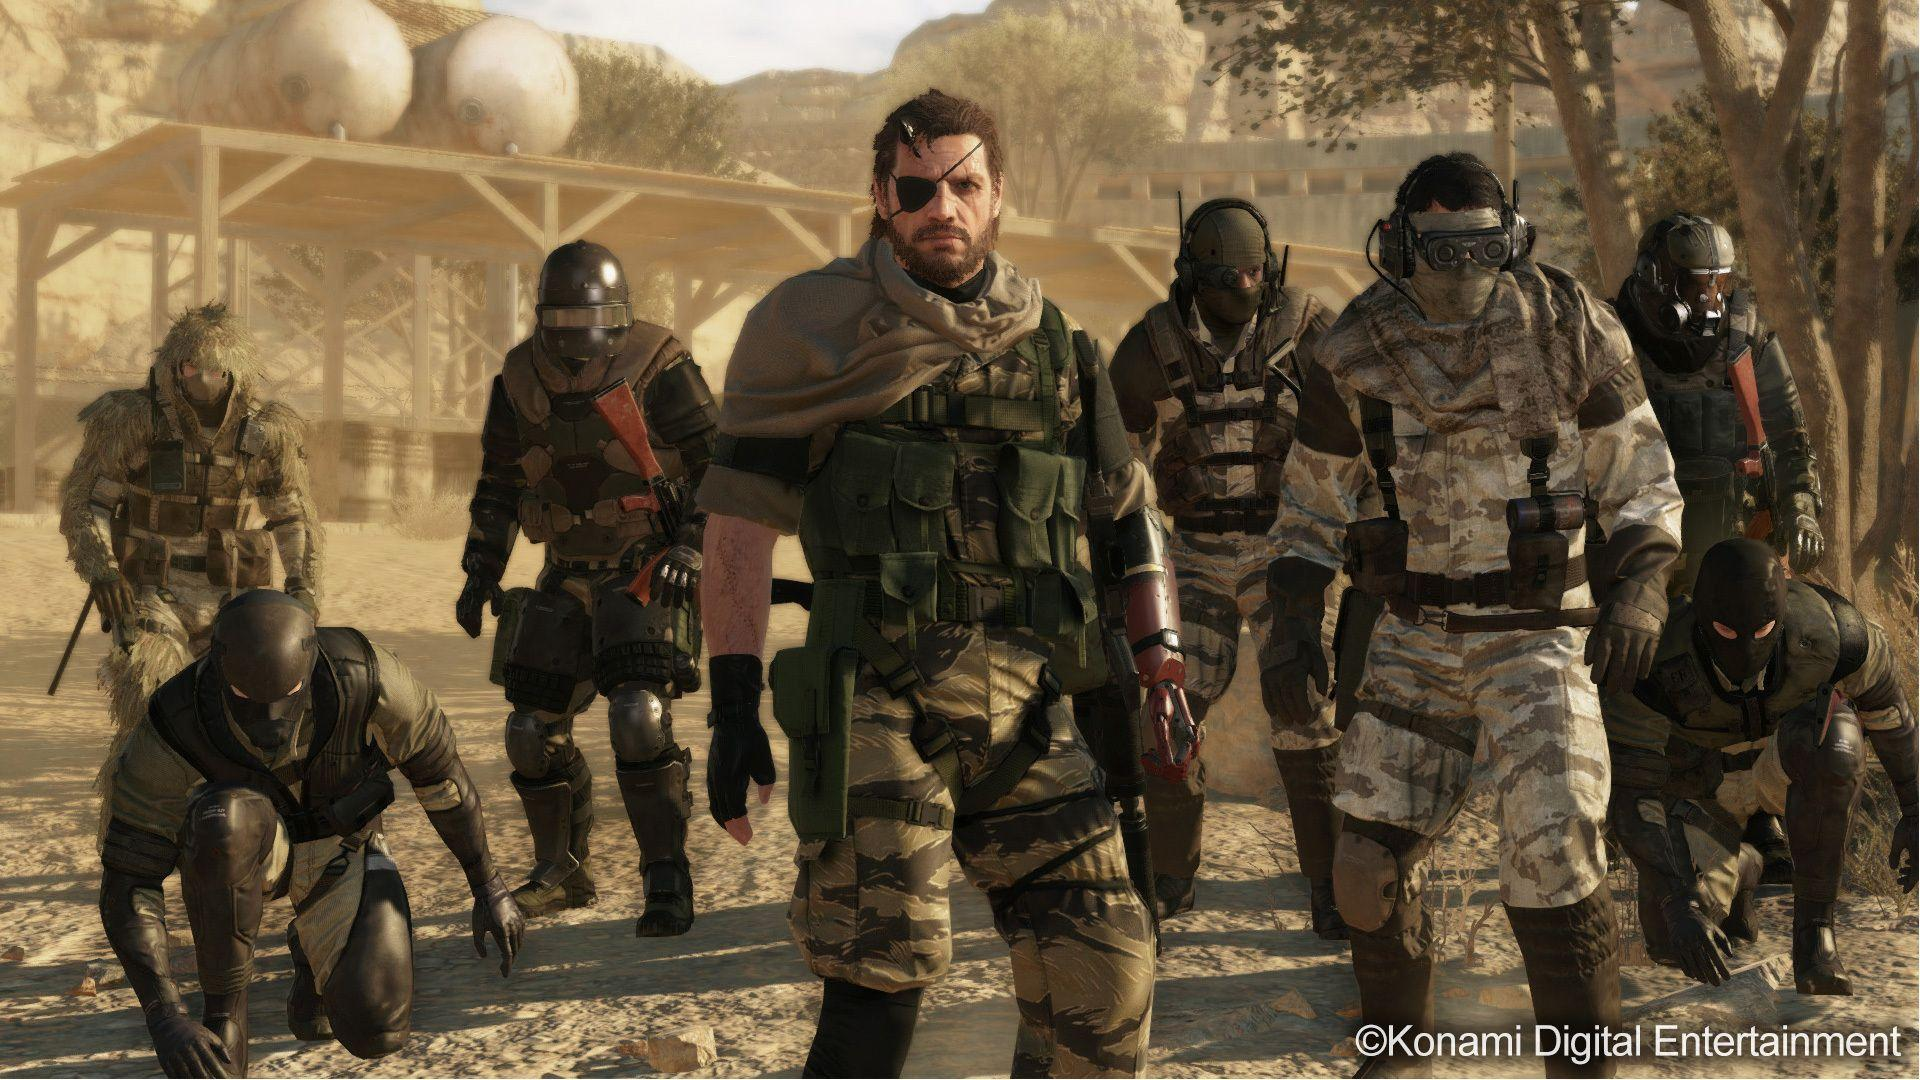 Metal Gear Solid V: The Phantom Pain Full HD Wallpapers and